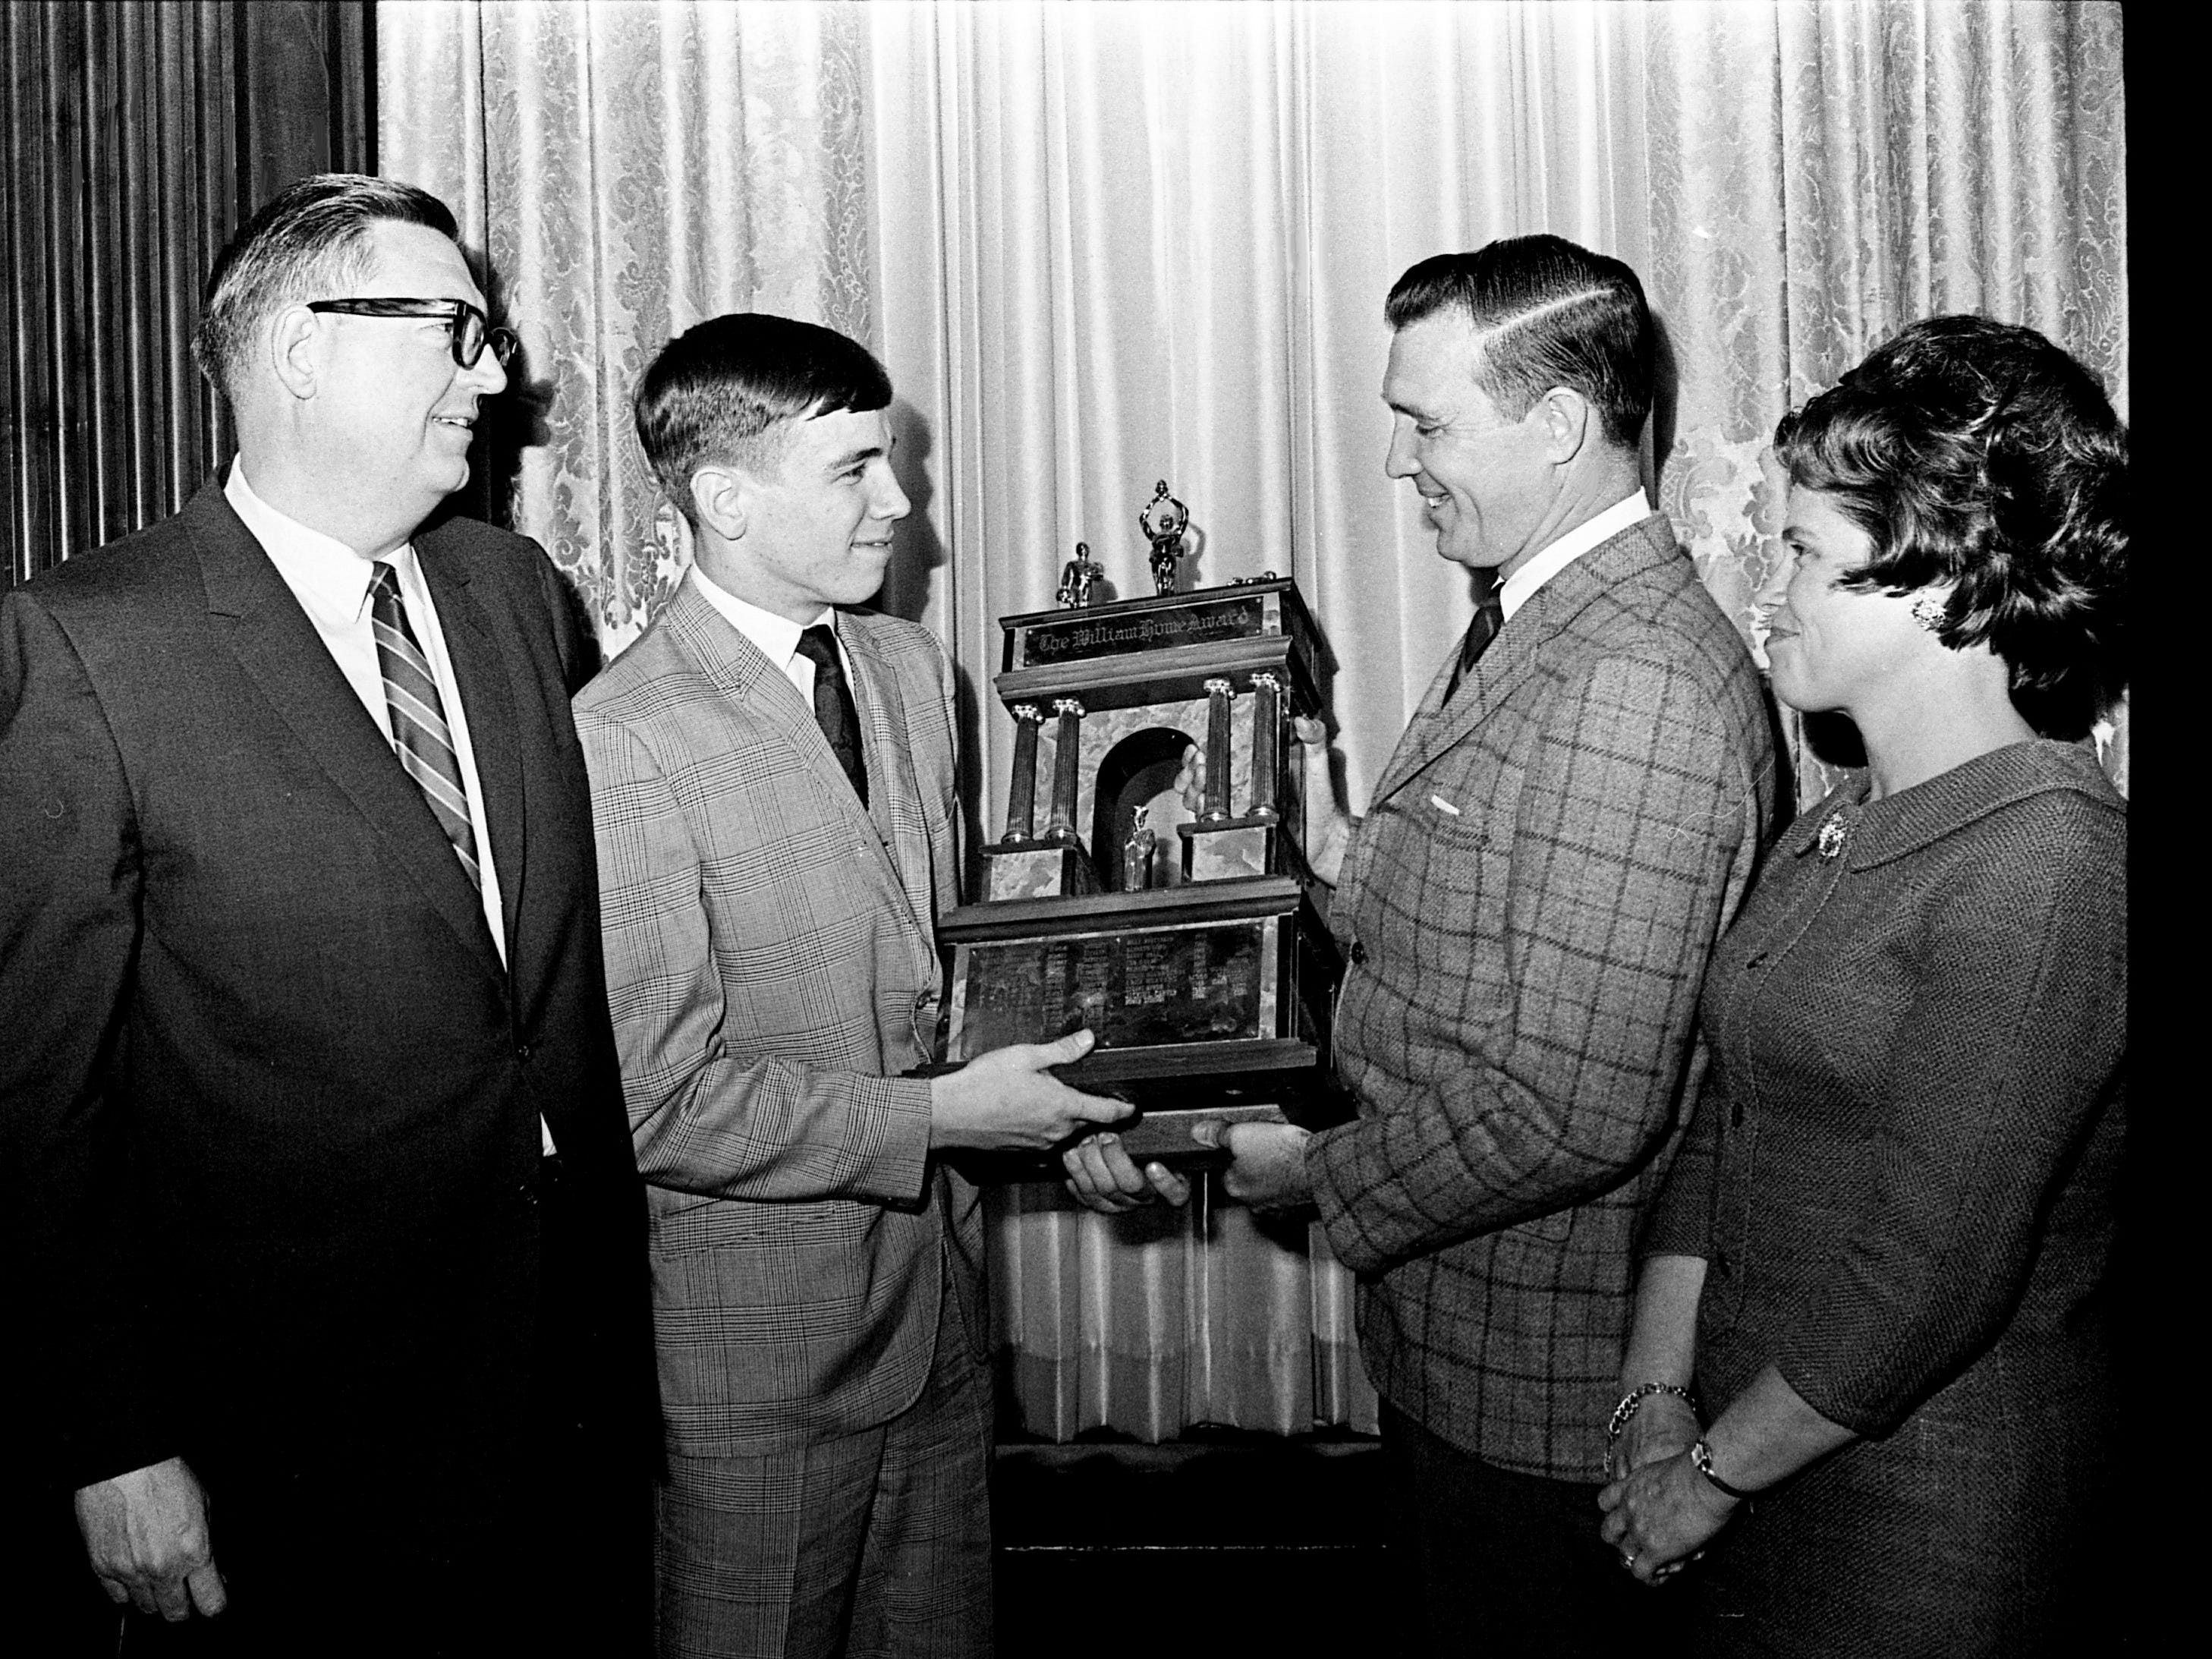 Butch Stinson, second from left, of Cohn High School holds the William Hume Award he received with his parents, Mr. and Mrs. Homer Stinson, right, during the Exchange Club meeting at the Hermitage Hotel on Jan. 21, 1969. The award, the 25th annual one, is based on sportsmanship, scholarship and individual performance on the football field and value to the team.